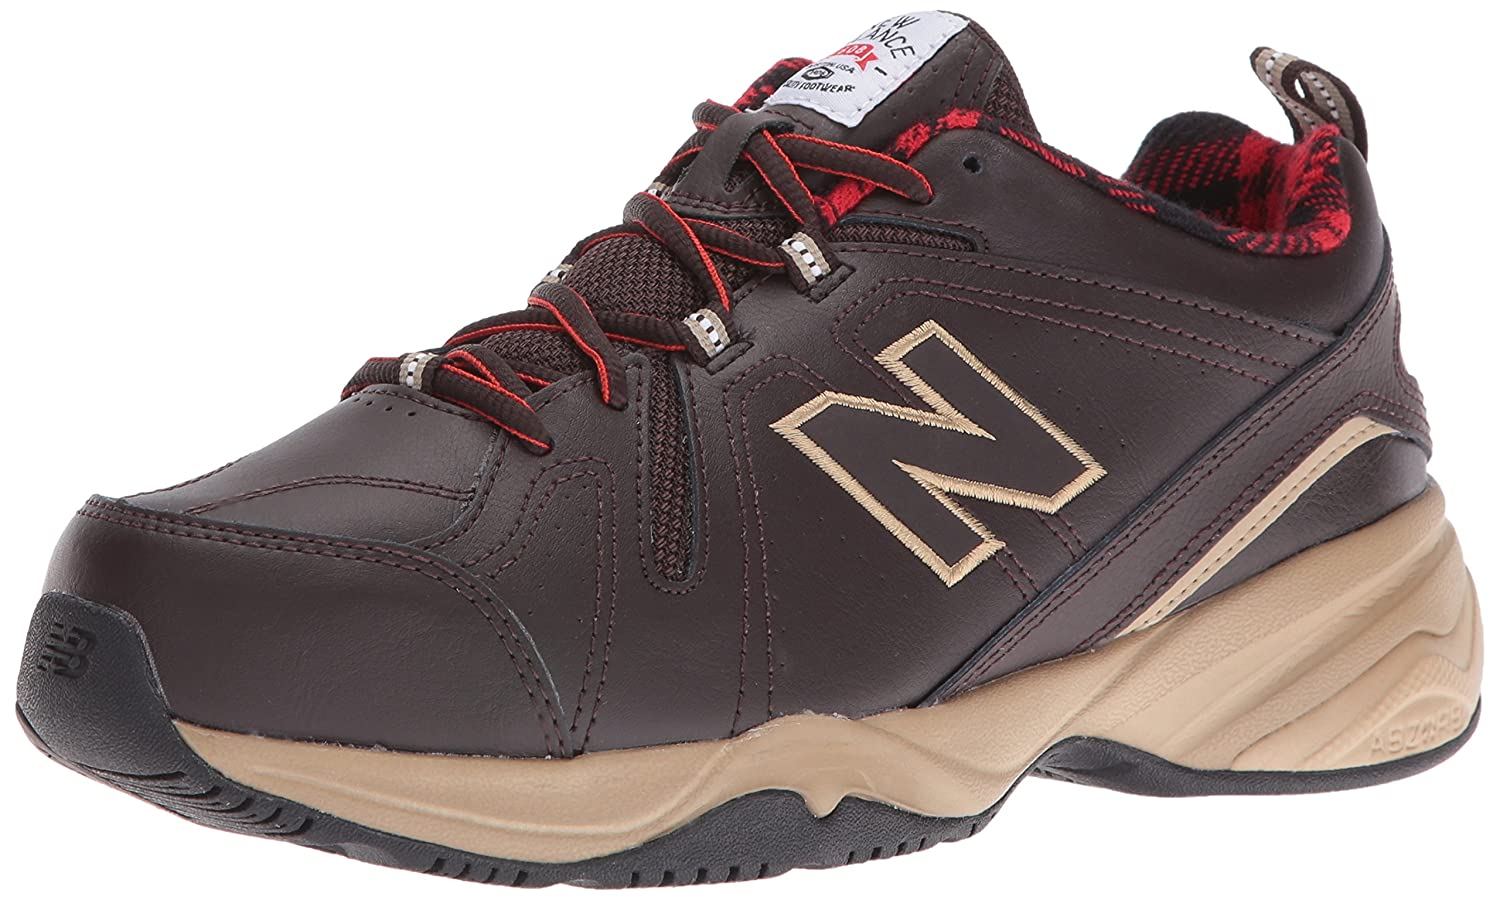 【30%OFF】 New Balance Men's Mx608 Ankle-High 4E Suede Men's Running Shoe B01CQTI900 Shoe ダークブラウン 9 4E US 9 4E US|ダークブラウン, 美野里町:e2629b76 --- svecha37.ru